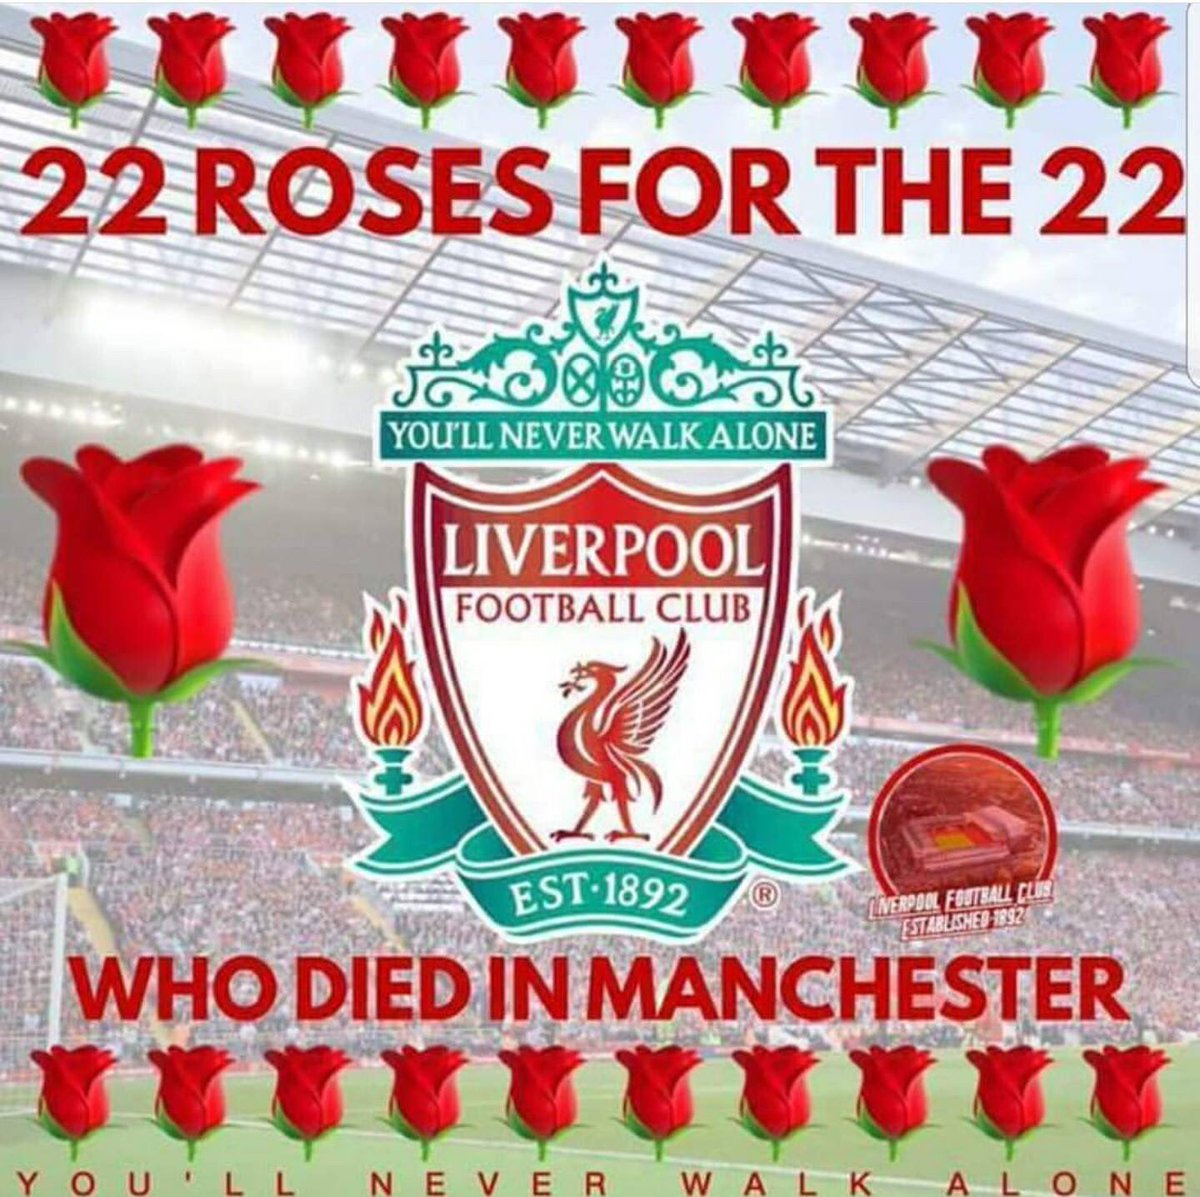 Seen this on Facebook. Copied it. Good to see fans putting life before rivalry #RIP #YNWA<br>http://pic.twitter.com/dB1JRH3pCi